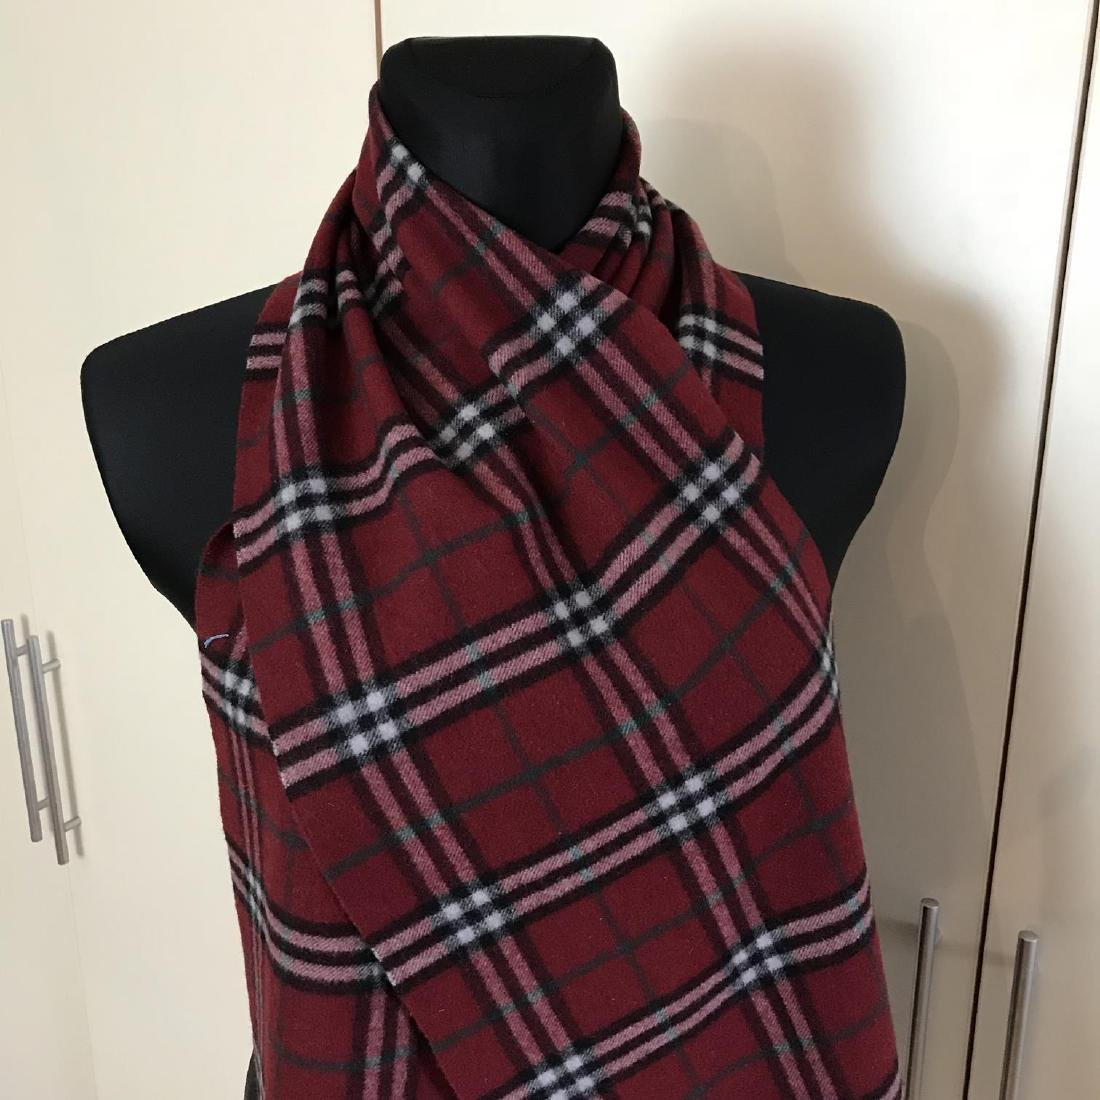 Burberry 100% Lambswool Bordeaux Nova Check Scarf - 3